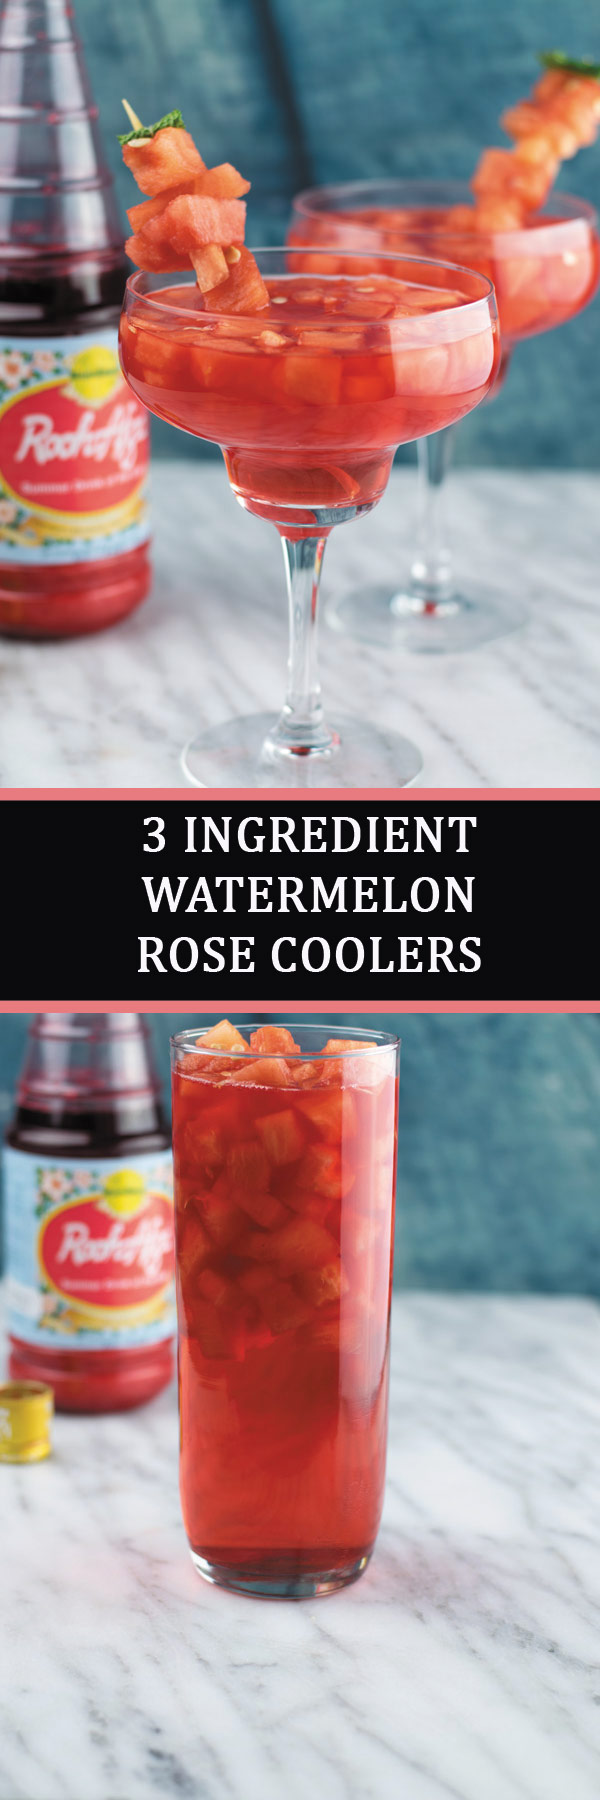 Watermelon Rose Coolers | NaiveCookCooks.com